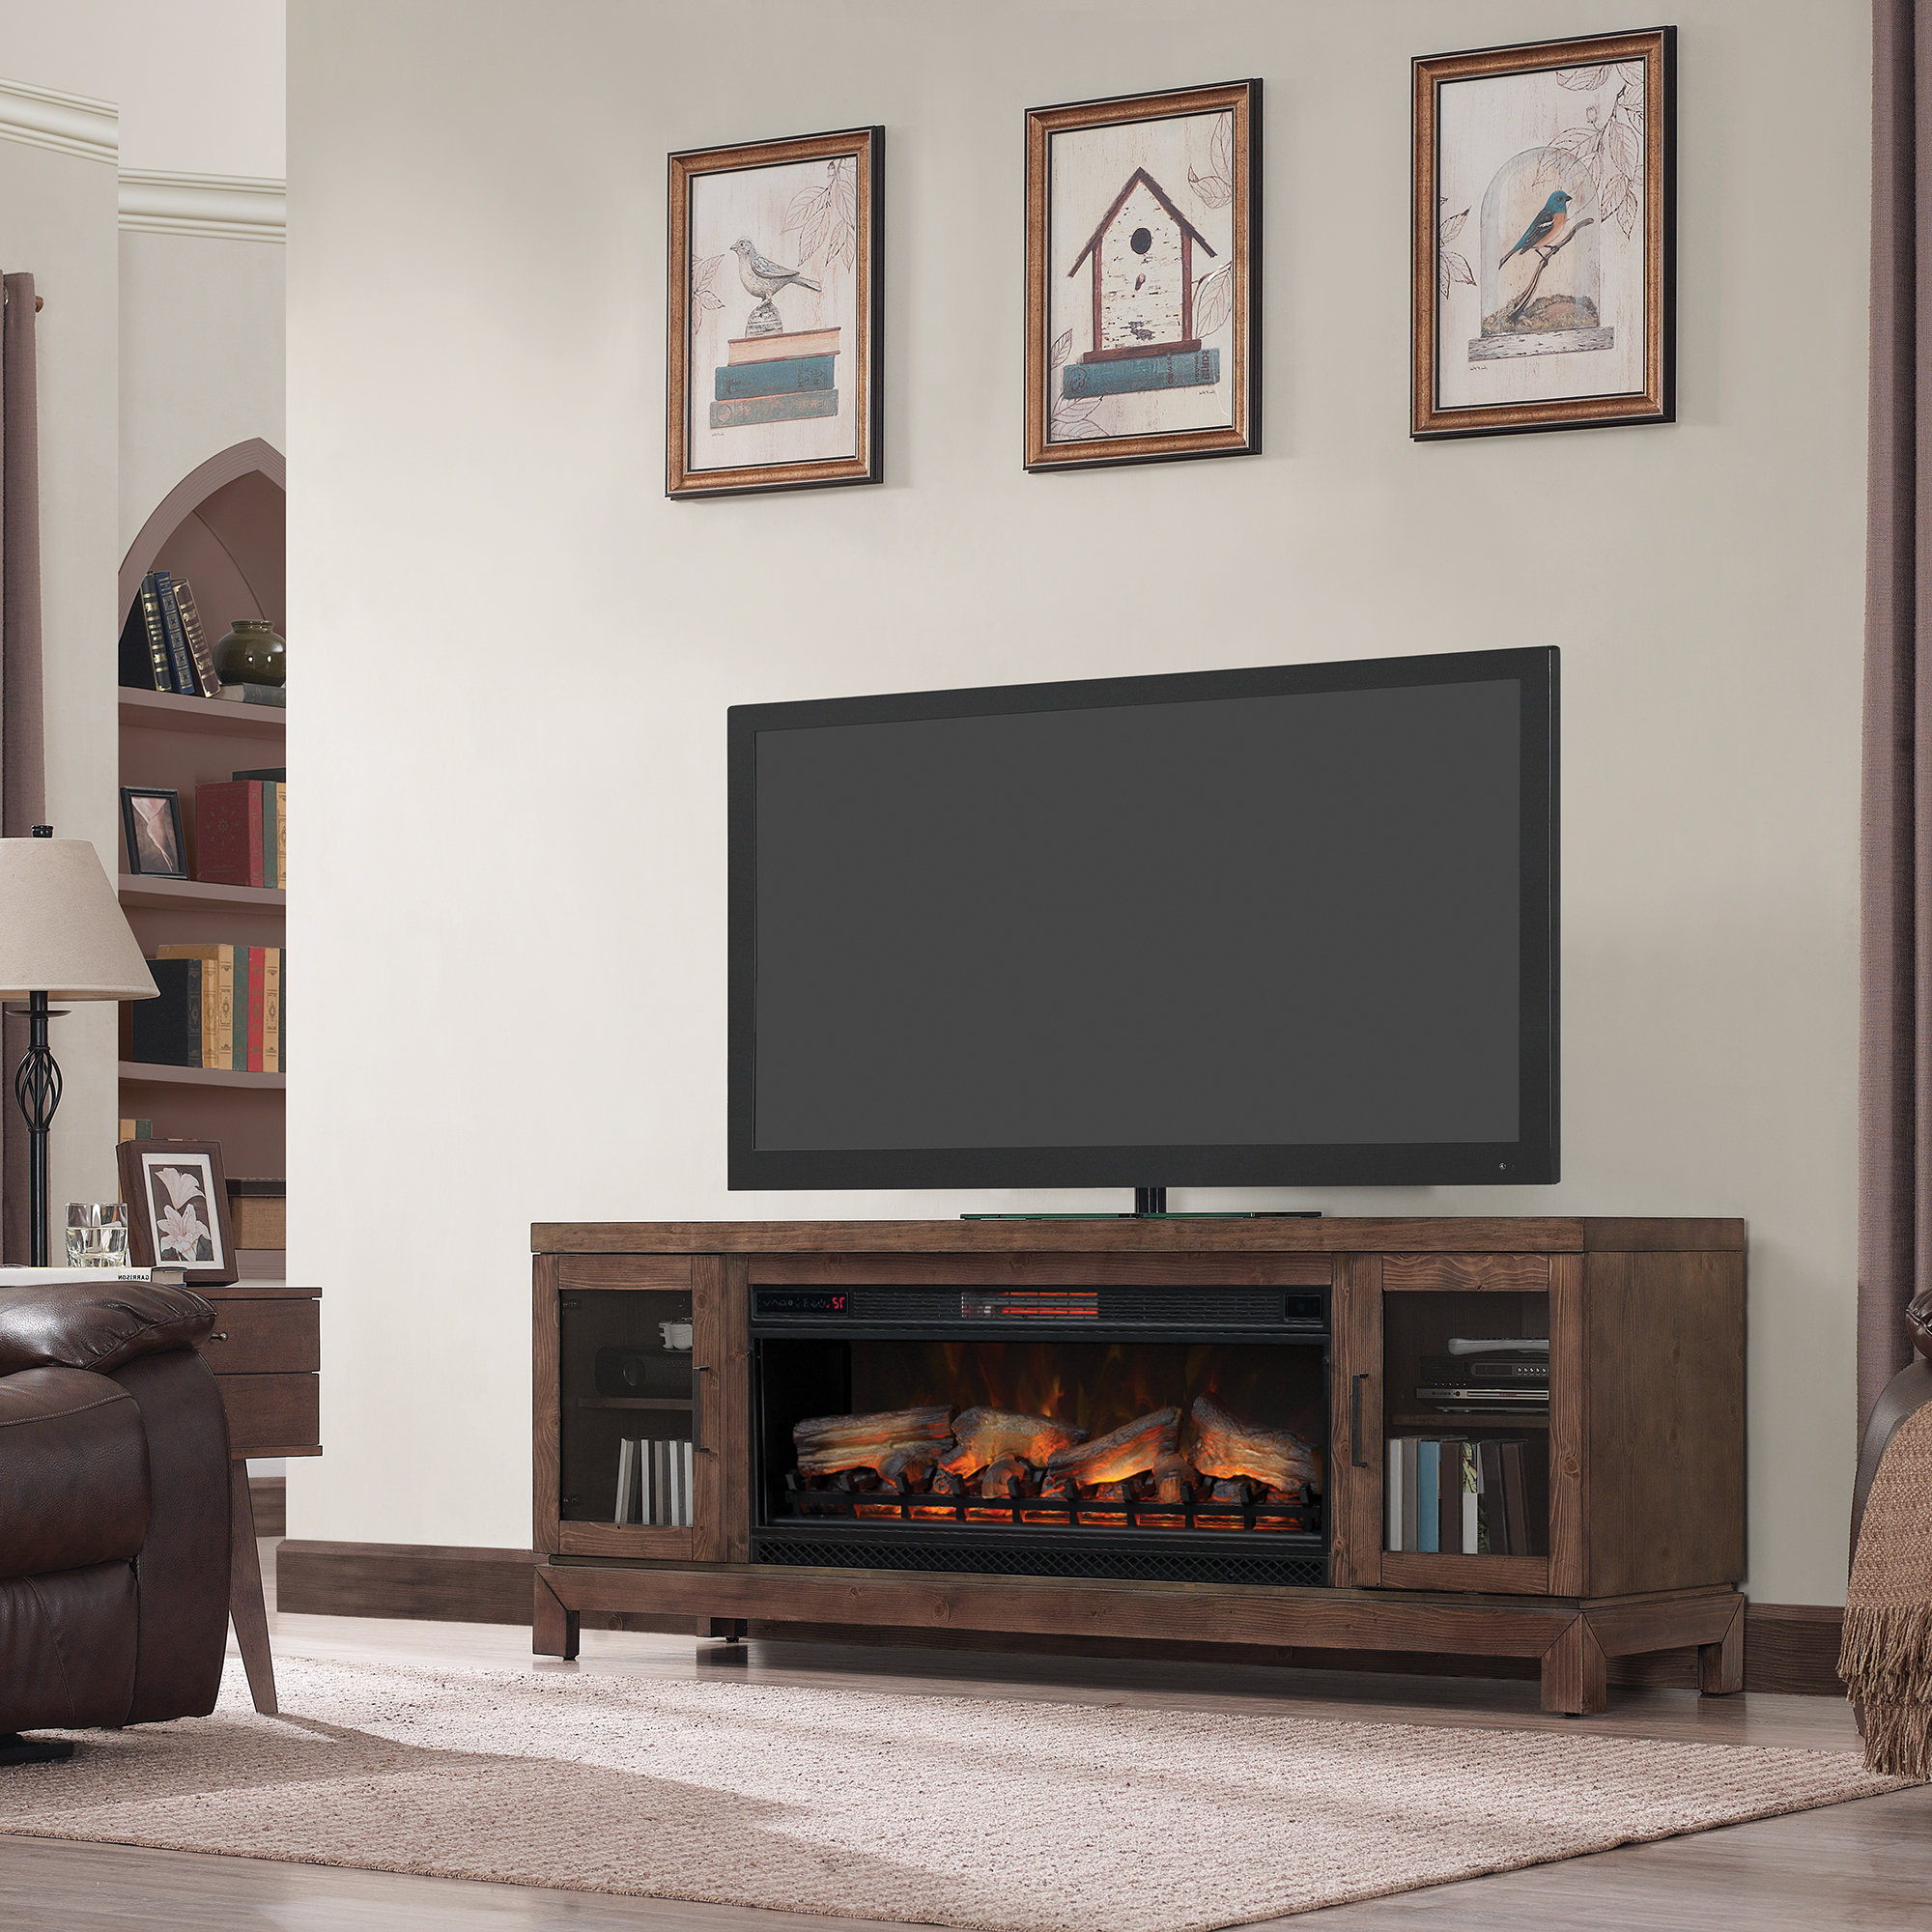 Rustic Tv Stand Fireplaces You'll Love | Wayfair (View 18 of 20)